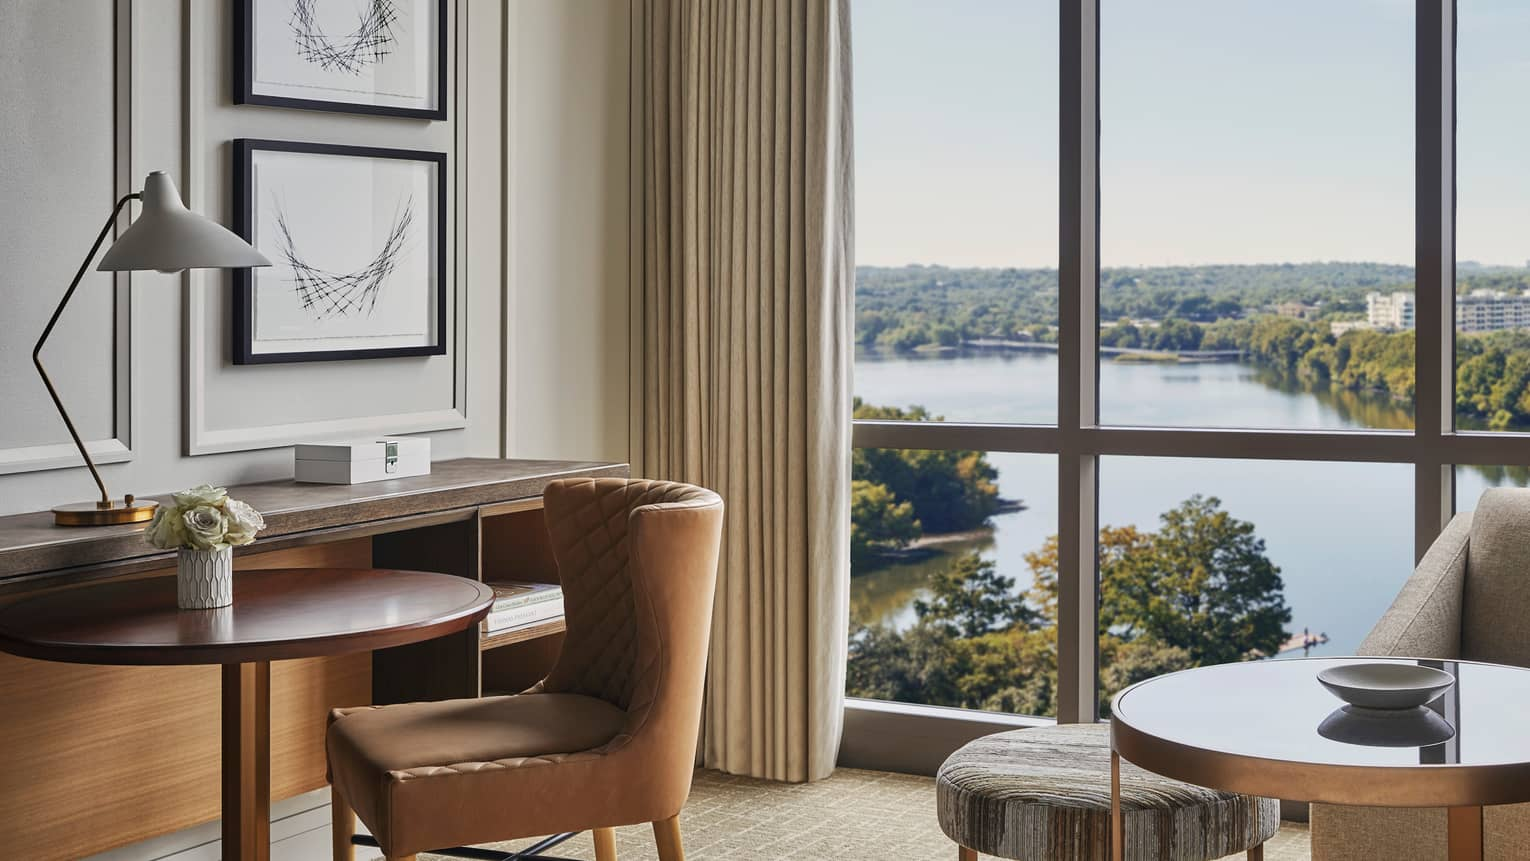 Leather chair by small hotel dining table, floor-to-ceiling windows, Lady Bird Lake views